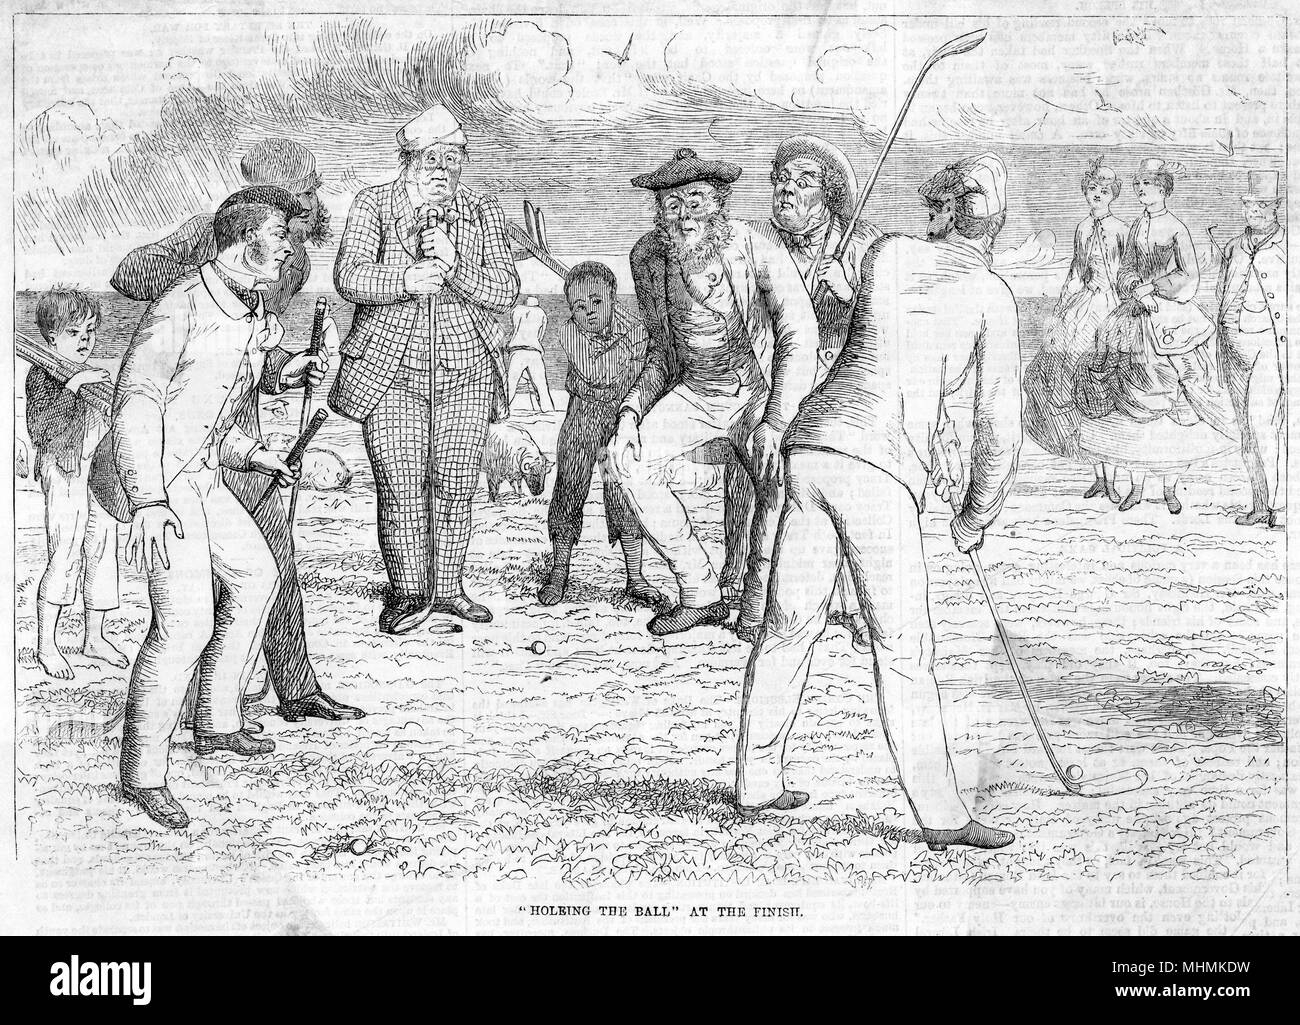 A golfer attempts to hole his final putt on the green, somewhat aided by his partner standing right behind the hole!      Date: 1865 - Stock Image